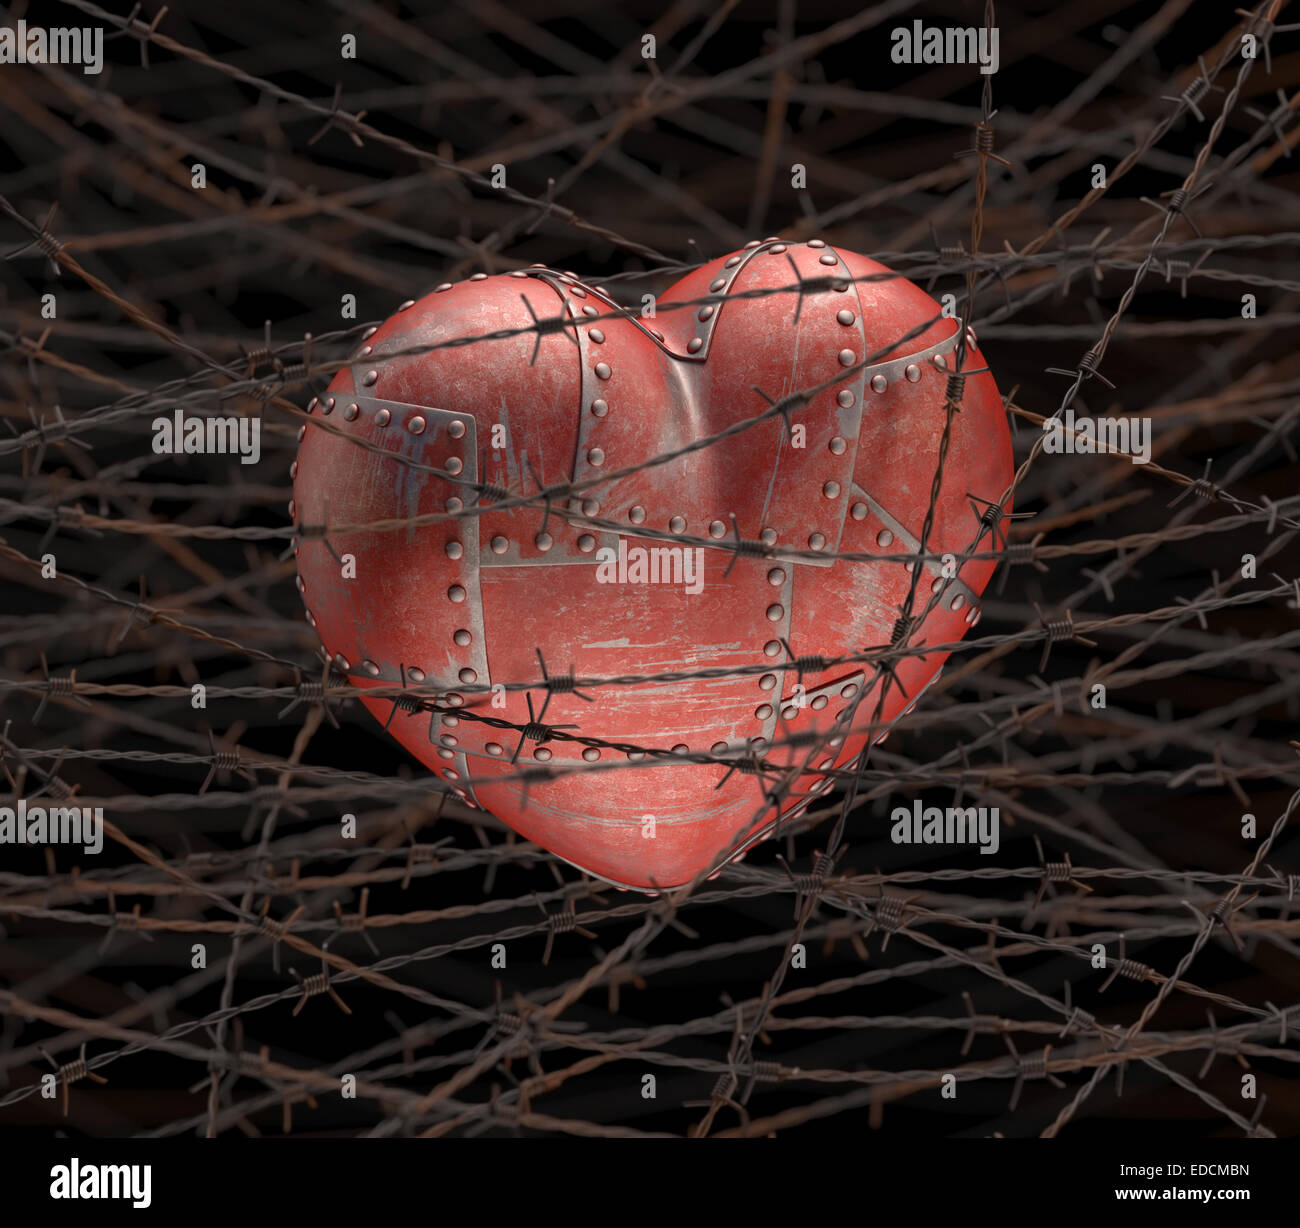 Metal heart with barbed wire around. - Stock Image